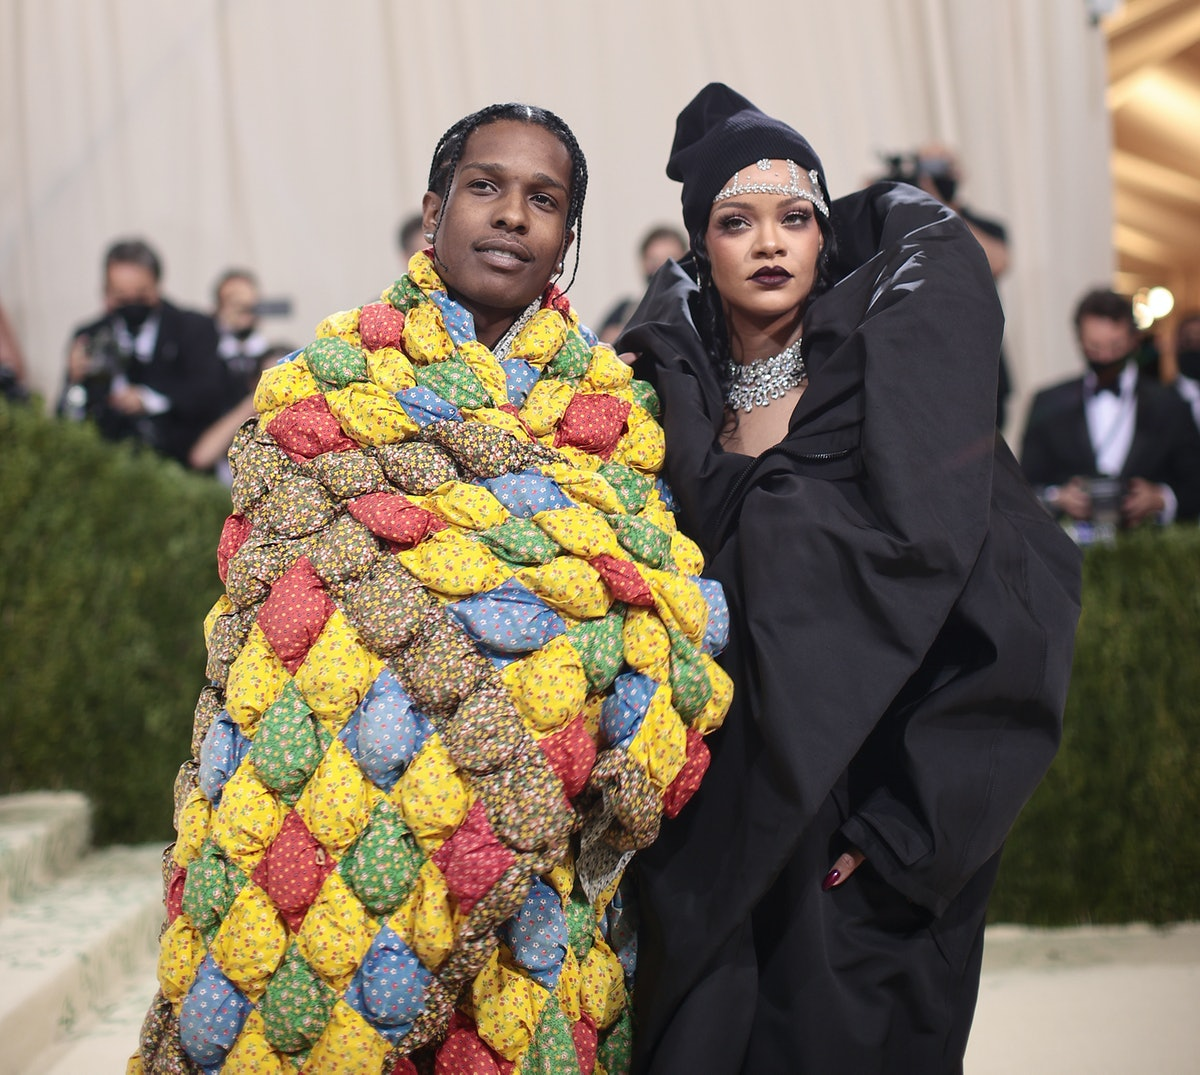 Rihanna and ASAP Rocky's Met Gala body language shows how comfortable they are together.